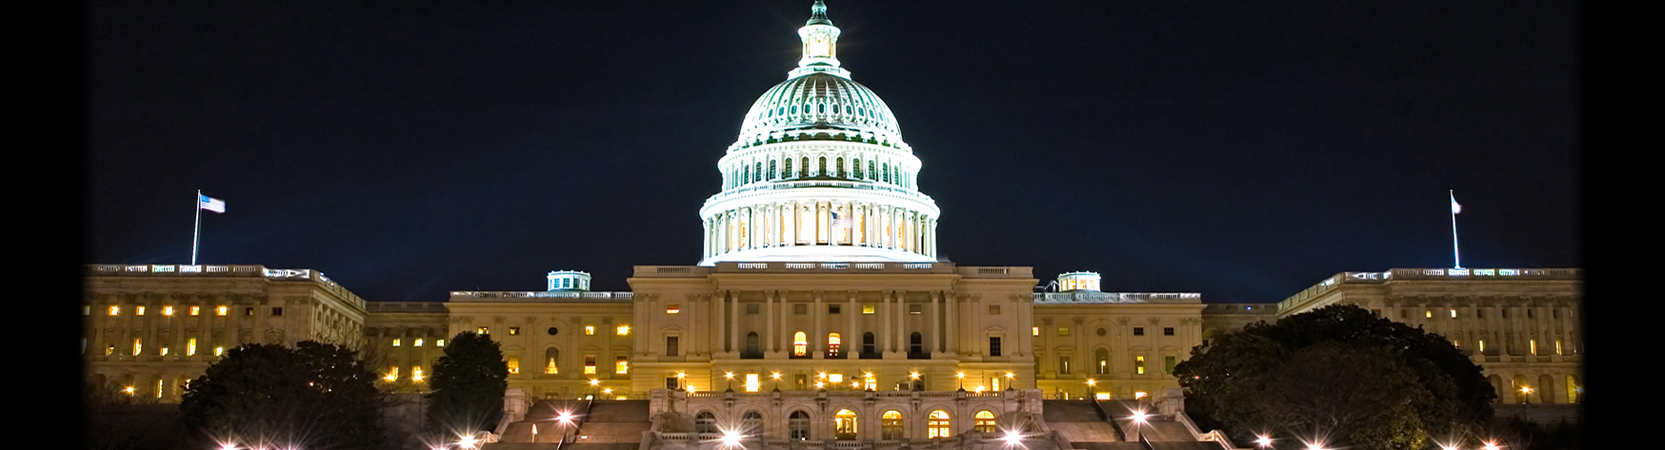 Capitol_at_Night_1665_450.jpg